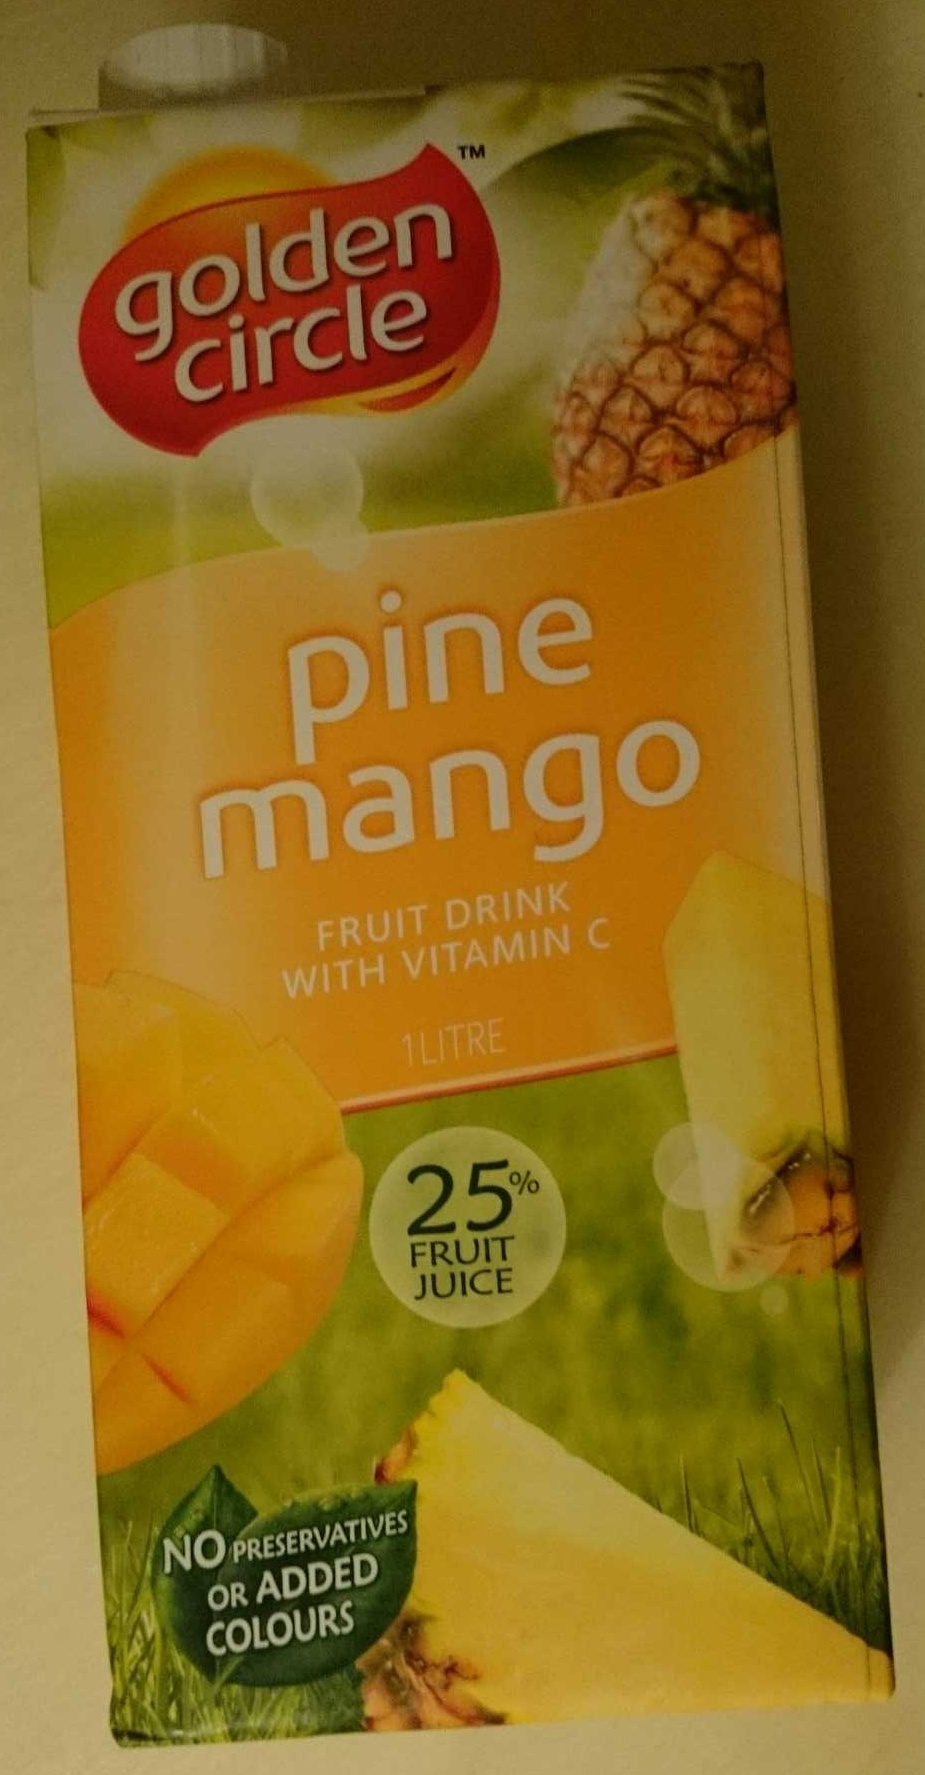 Pine Mango Fruit Drink With Vitamin C - Product - en